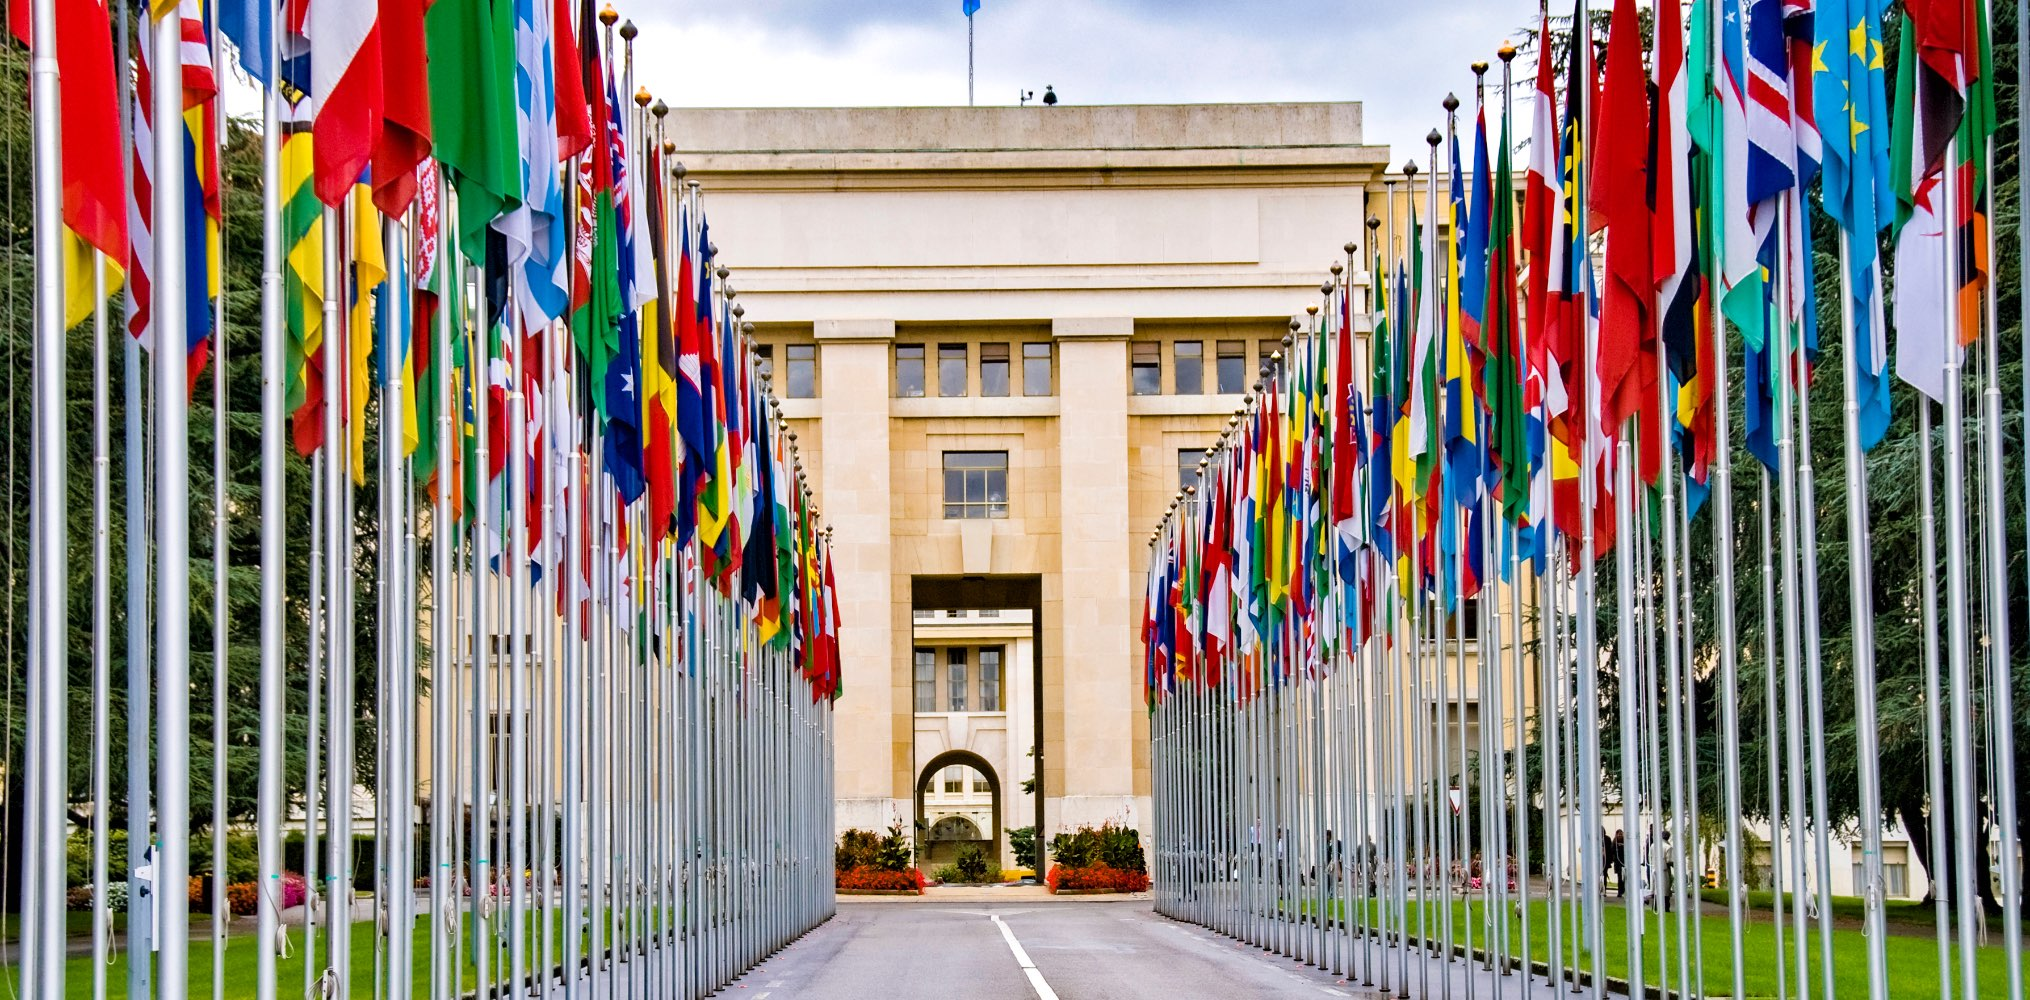 The entrance to the United Nations in Geneva, Switzerland lined with flags from various countries